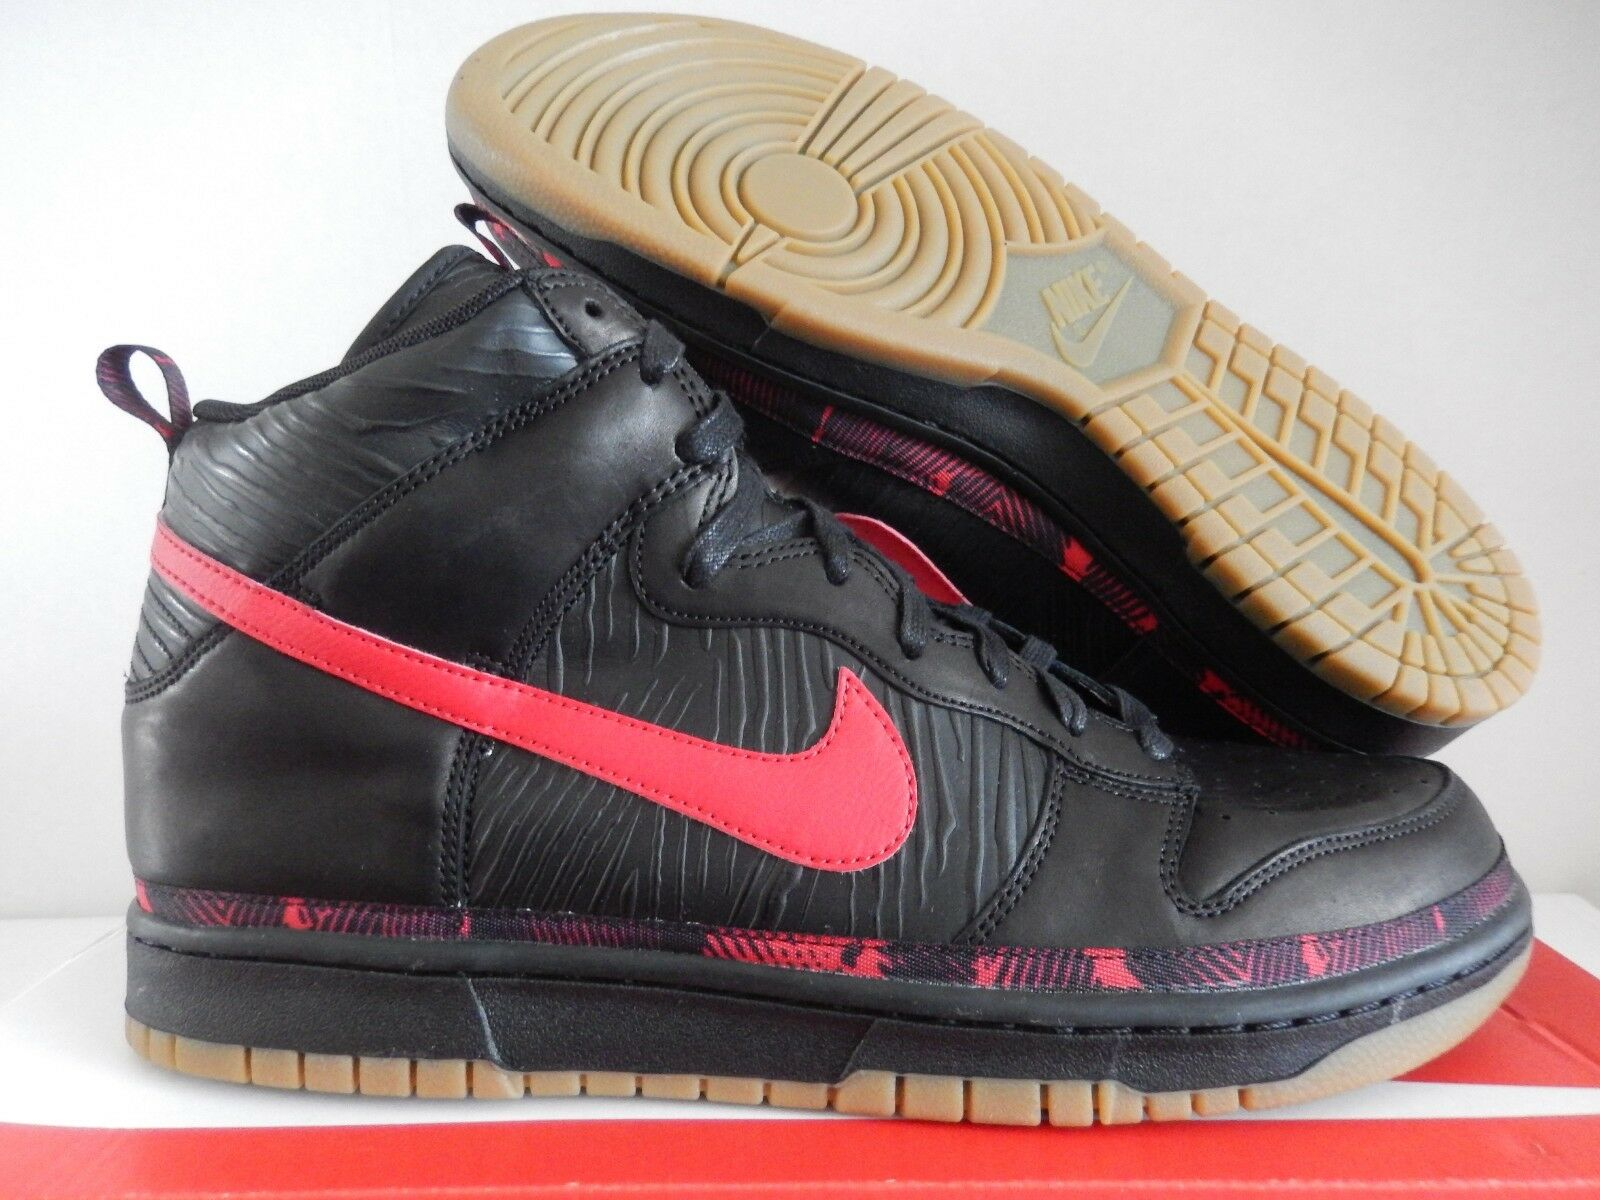 NIKE DUNK HIGH PREMIUM N7 Noir -UNIVERSITY rouge SZ 13